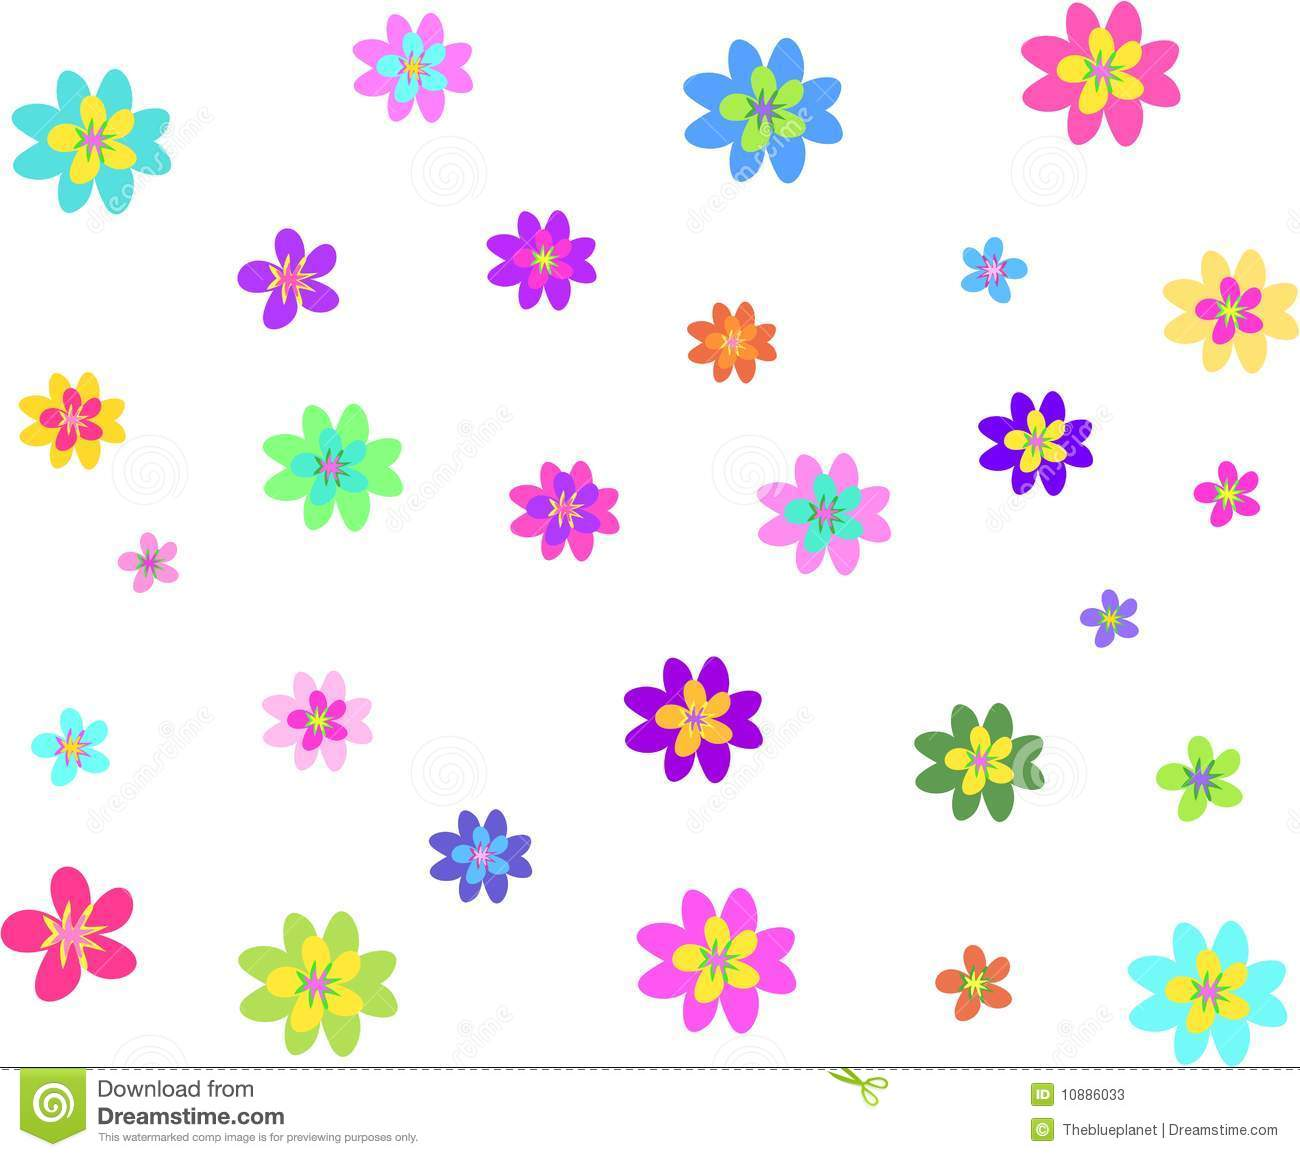 Here is a collection of flowers of different colors and sizes.